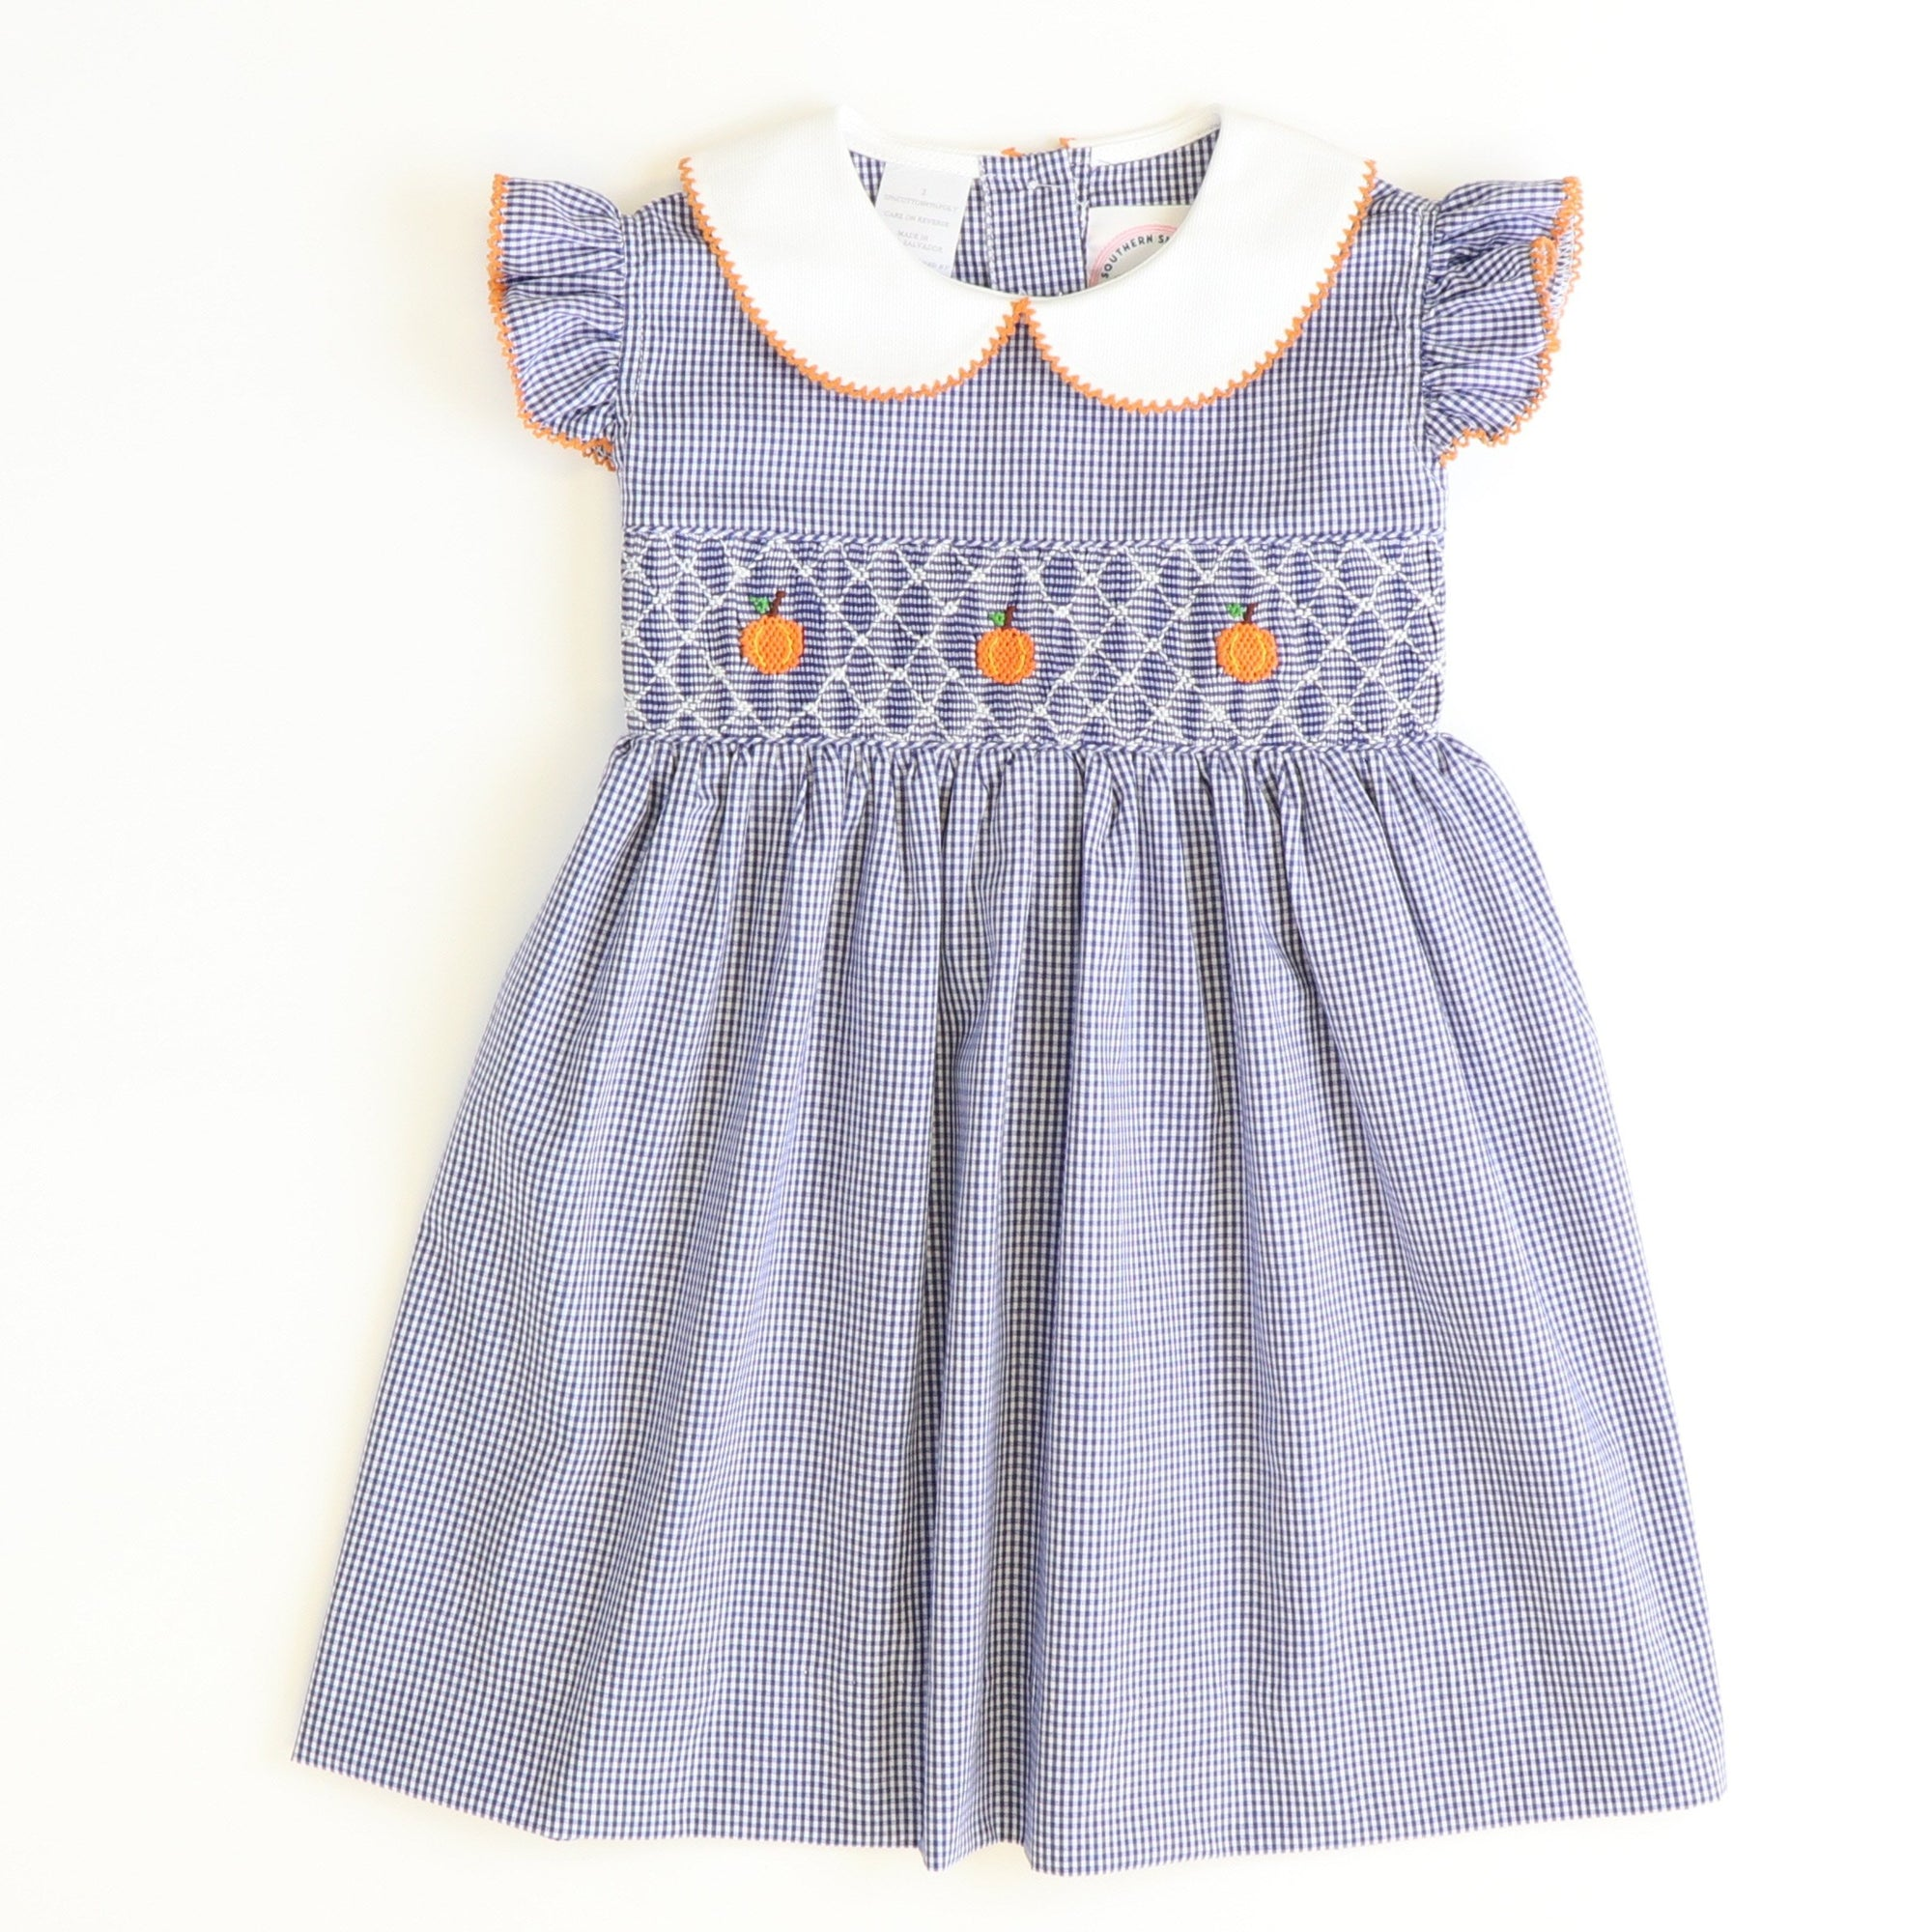 Smocked Geo Pumpkins Collared Dress - Navy Blue Mini Check